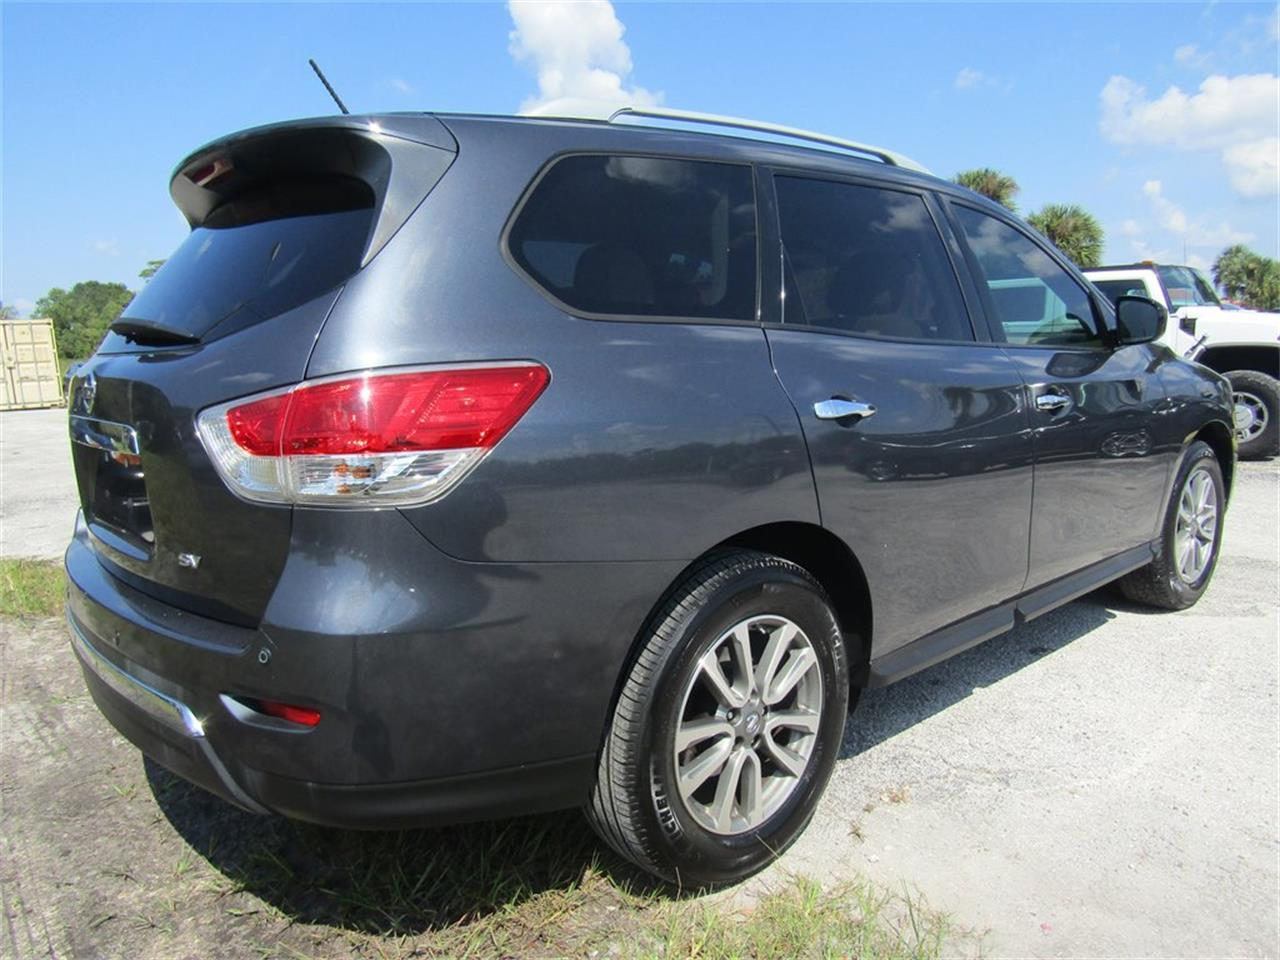 2014 Nissan Pathfinder (CC-1254391) for sale in Orlando, Florida